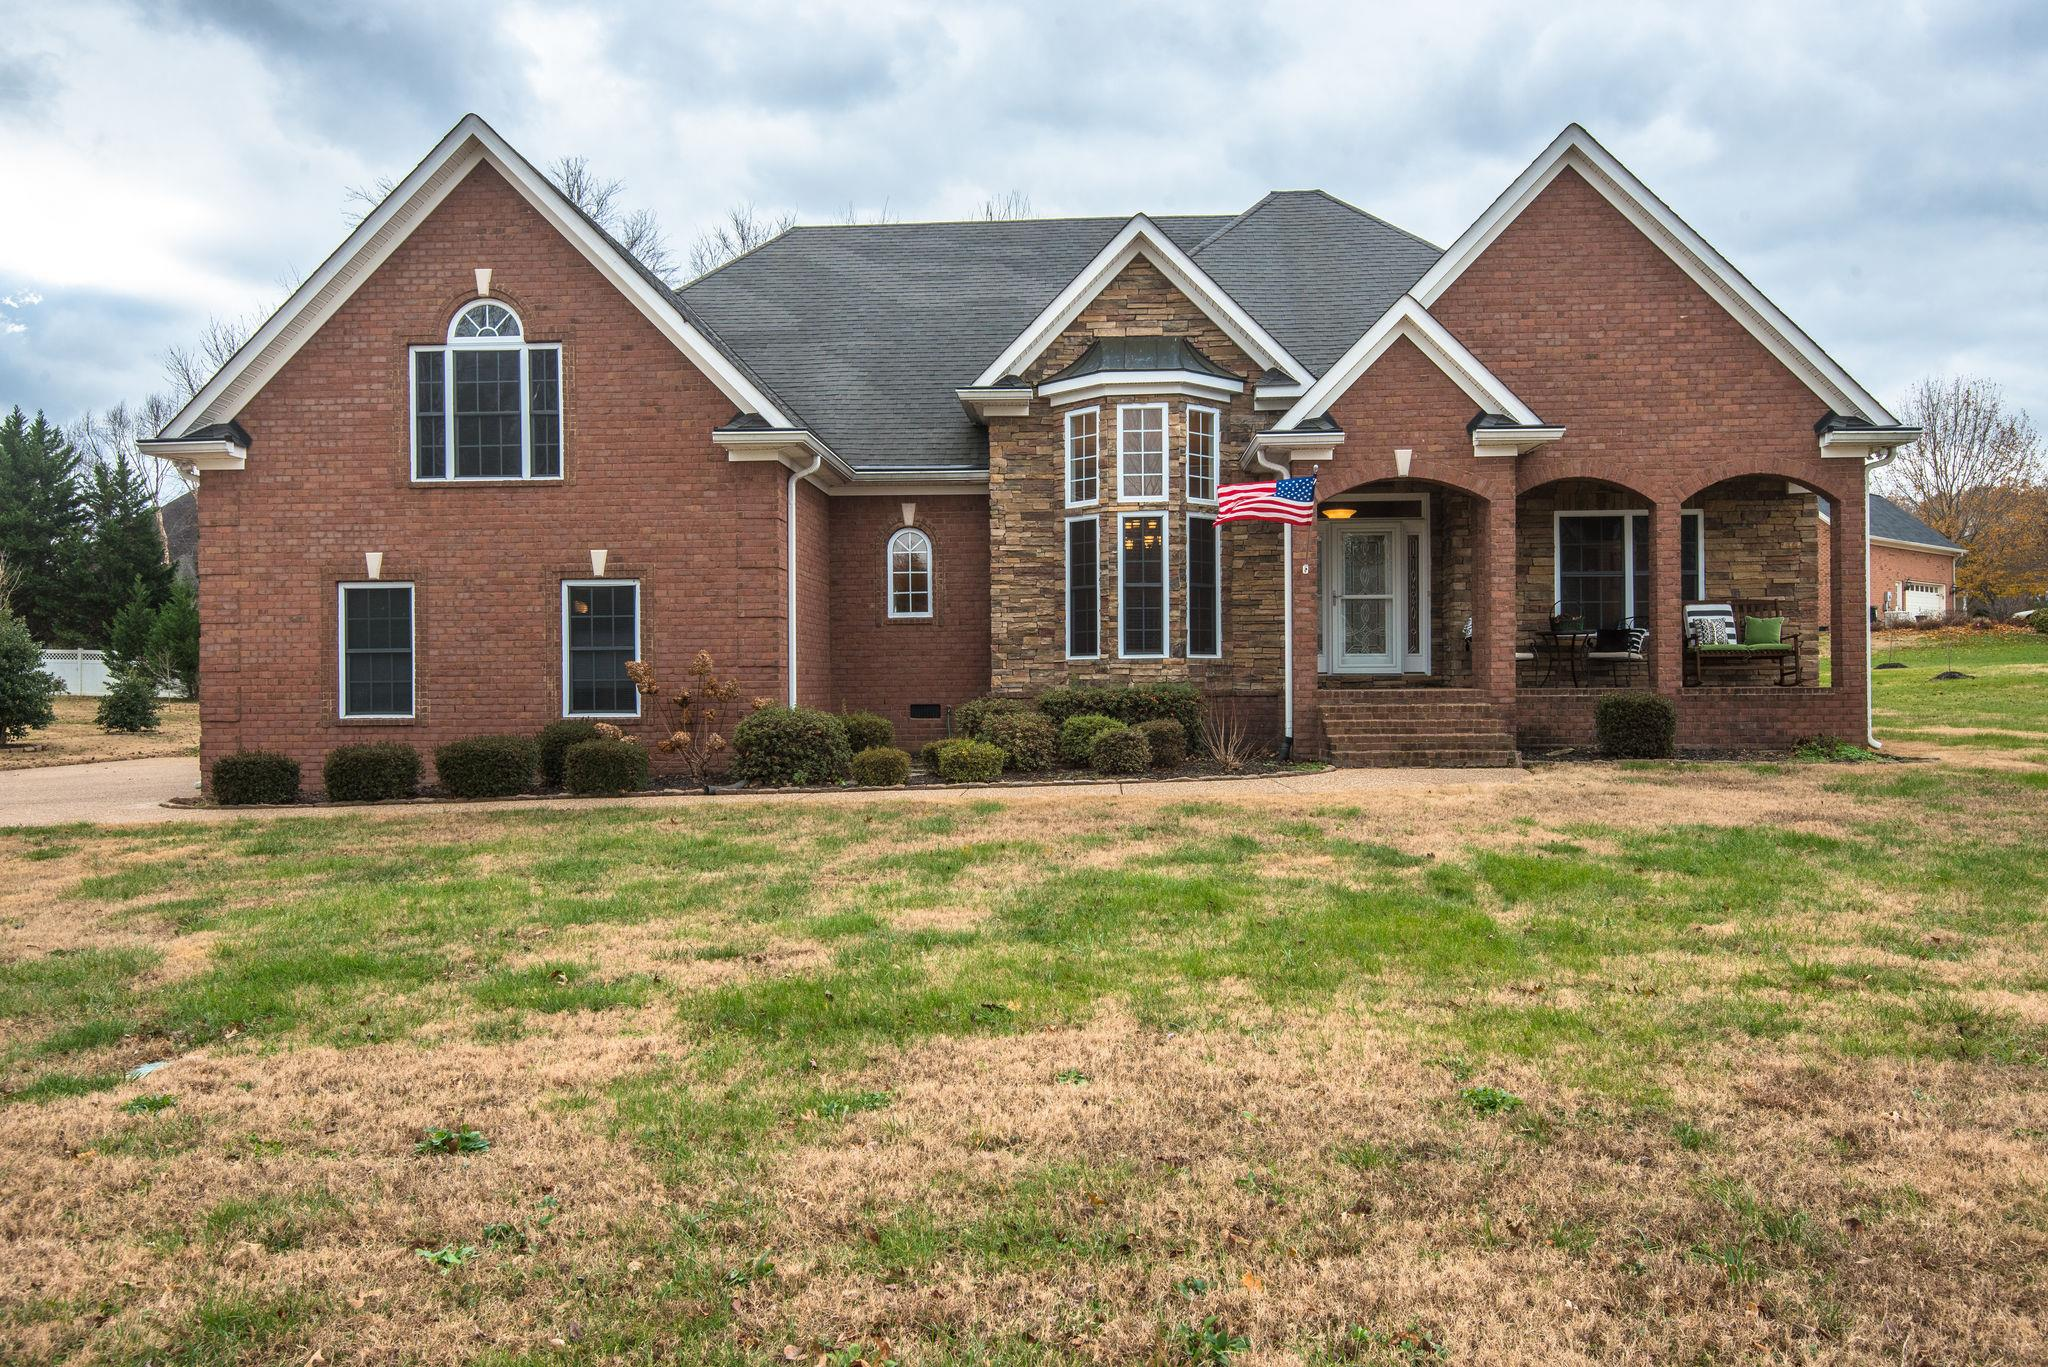 7204 Keynsham Dr, Fairview in Williamson County County, TN 37062 Home for Sale